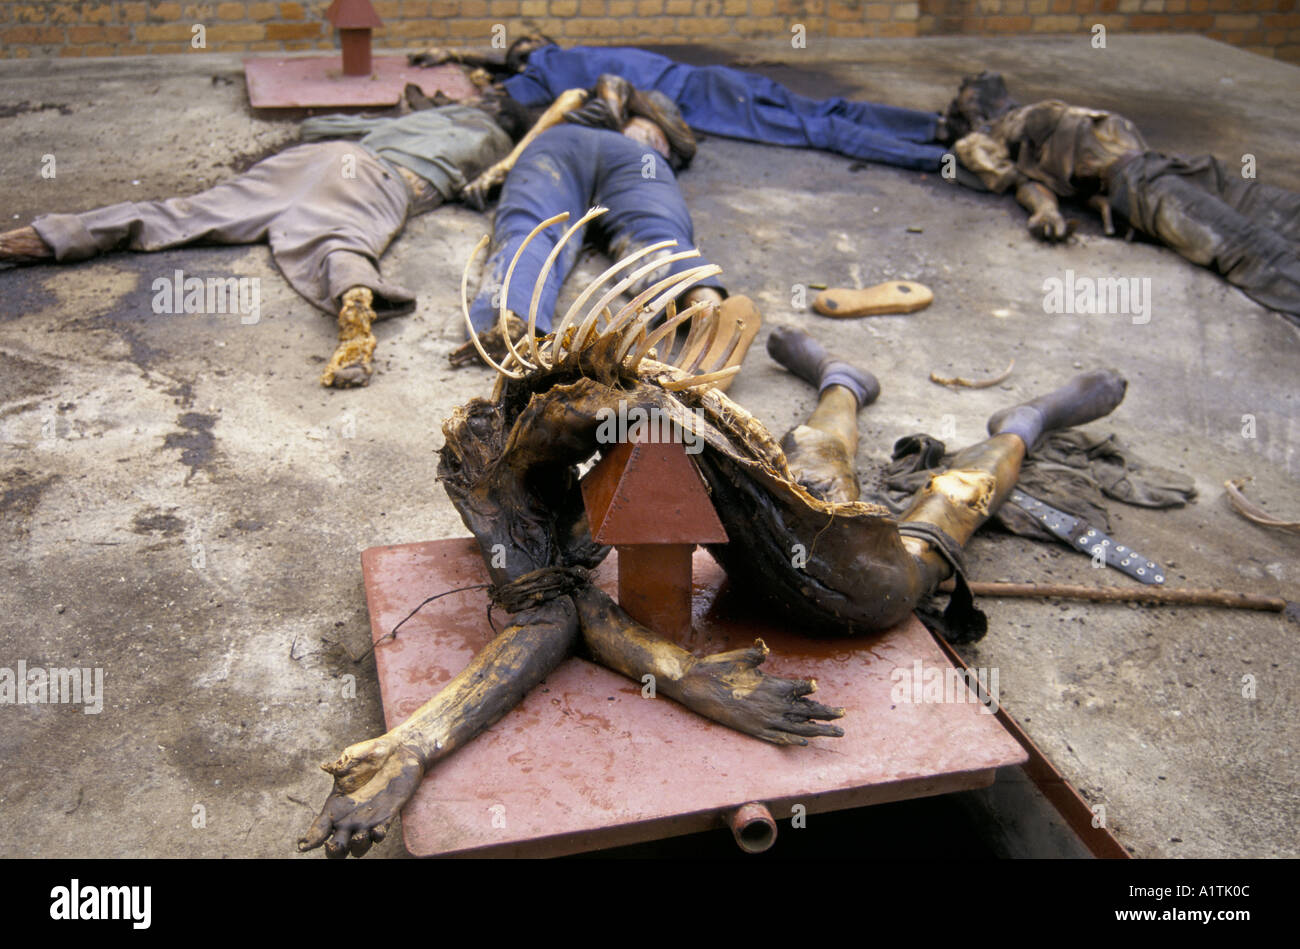 RWANDA THE REMAINS OF A BODY WHICH HAS BEEN TORTURED KABGAYI AUG 1994 - Stock Image